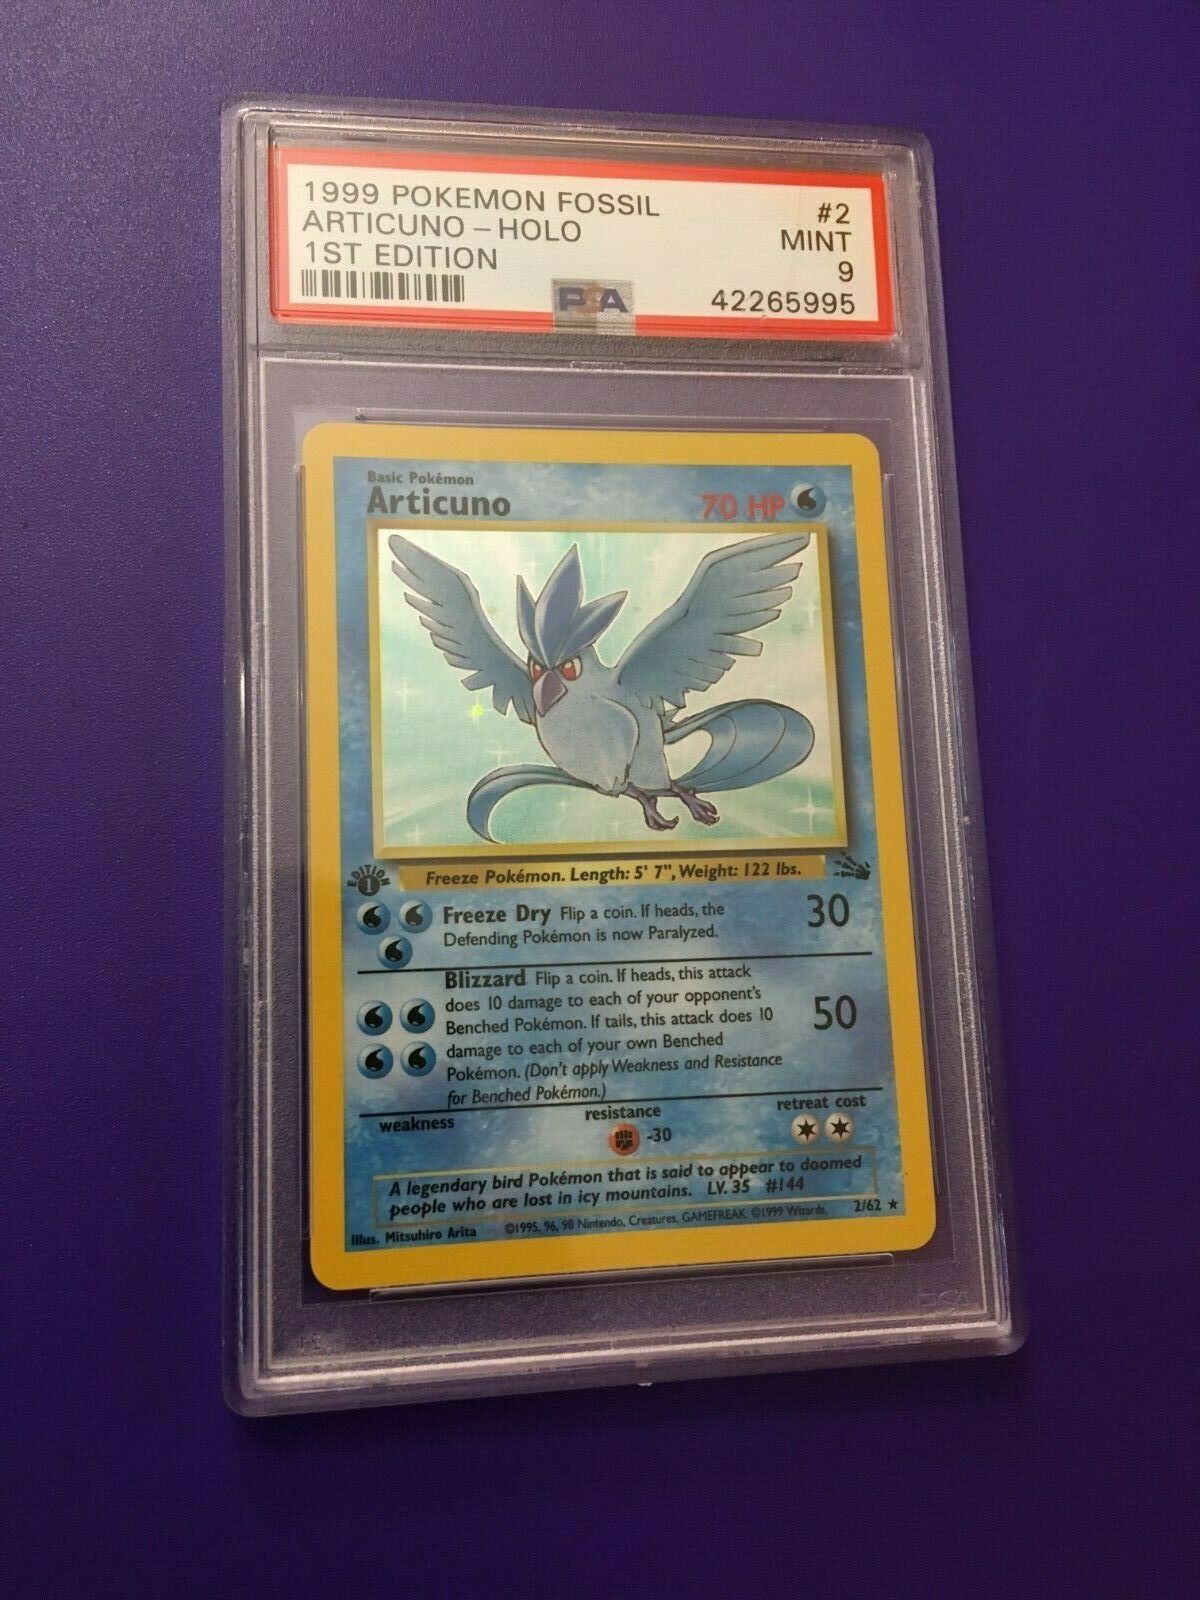 Articuno 1st edition Holo PSA 9 Mint Fossil 1999 Pokemon Card 262